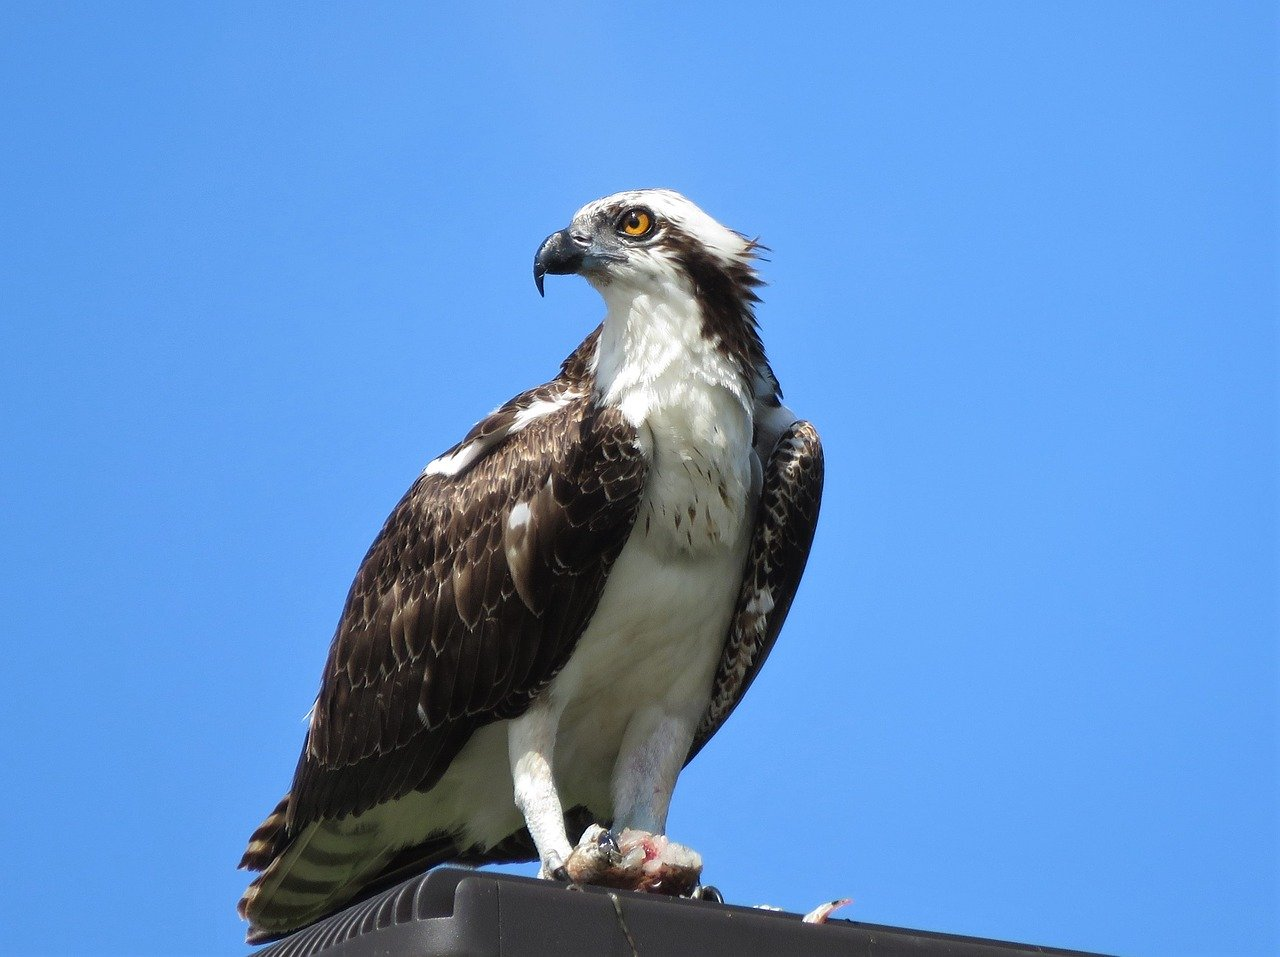 Florida Birds of Prey the Osprey found on Anna Maria Island, Florida